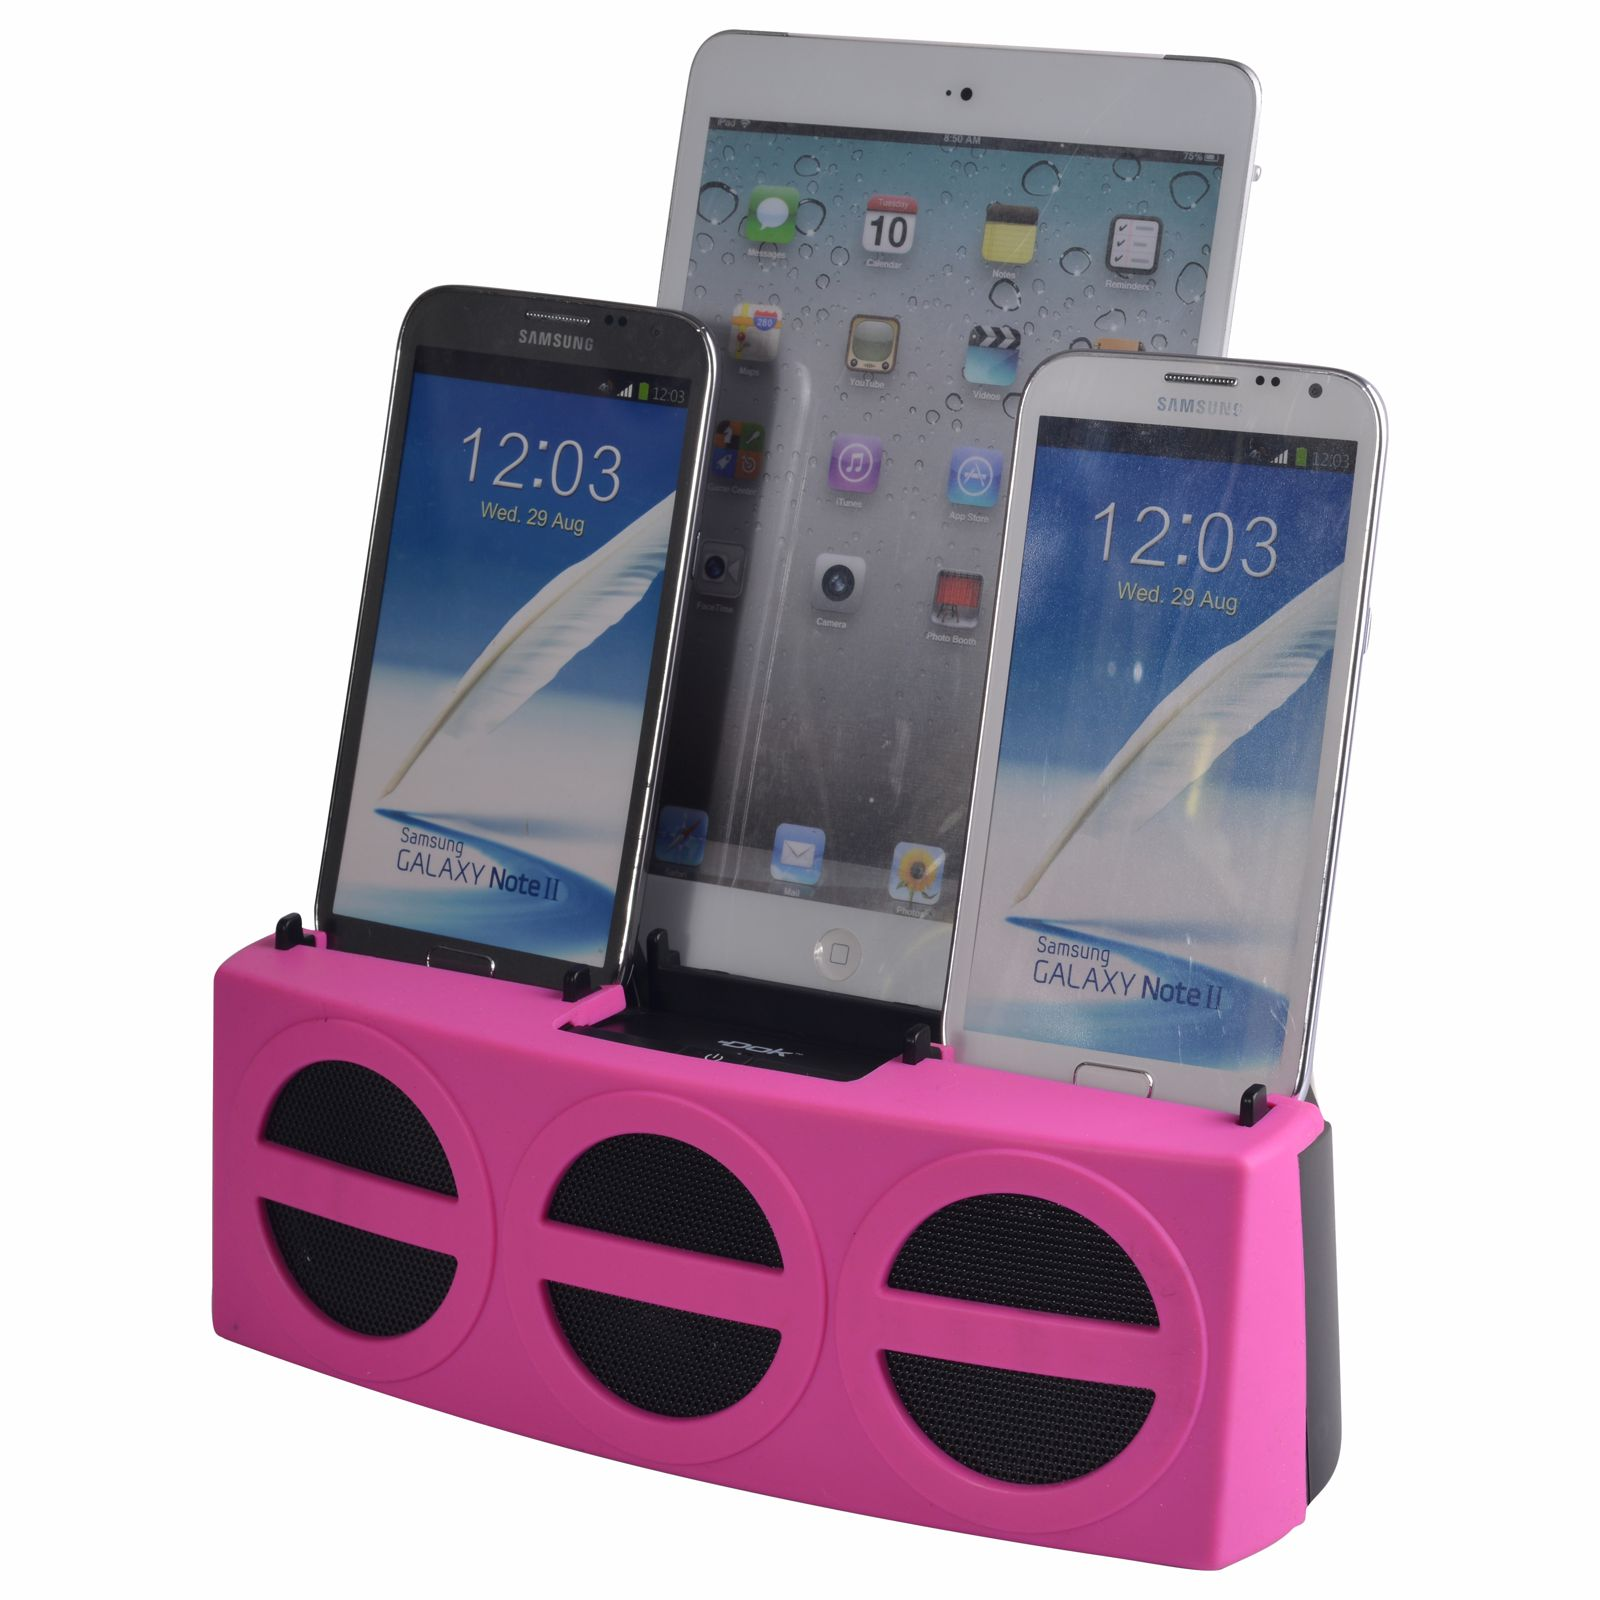 CR33PK - 5 Port Smart Phone Charger with Bluetooth Speaker and Speaker Phone (Pink Face)